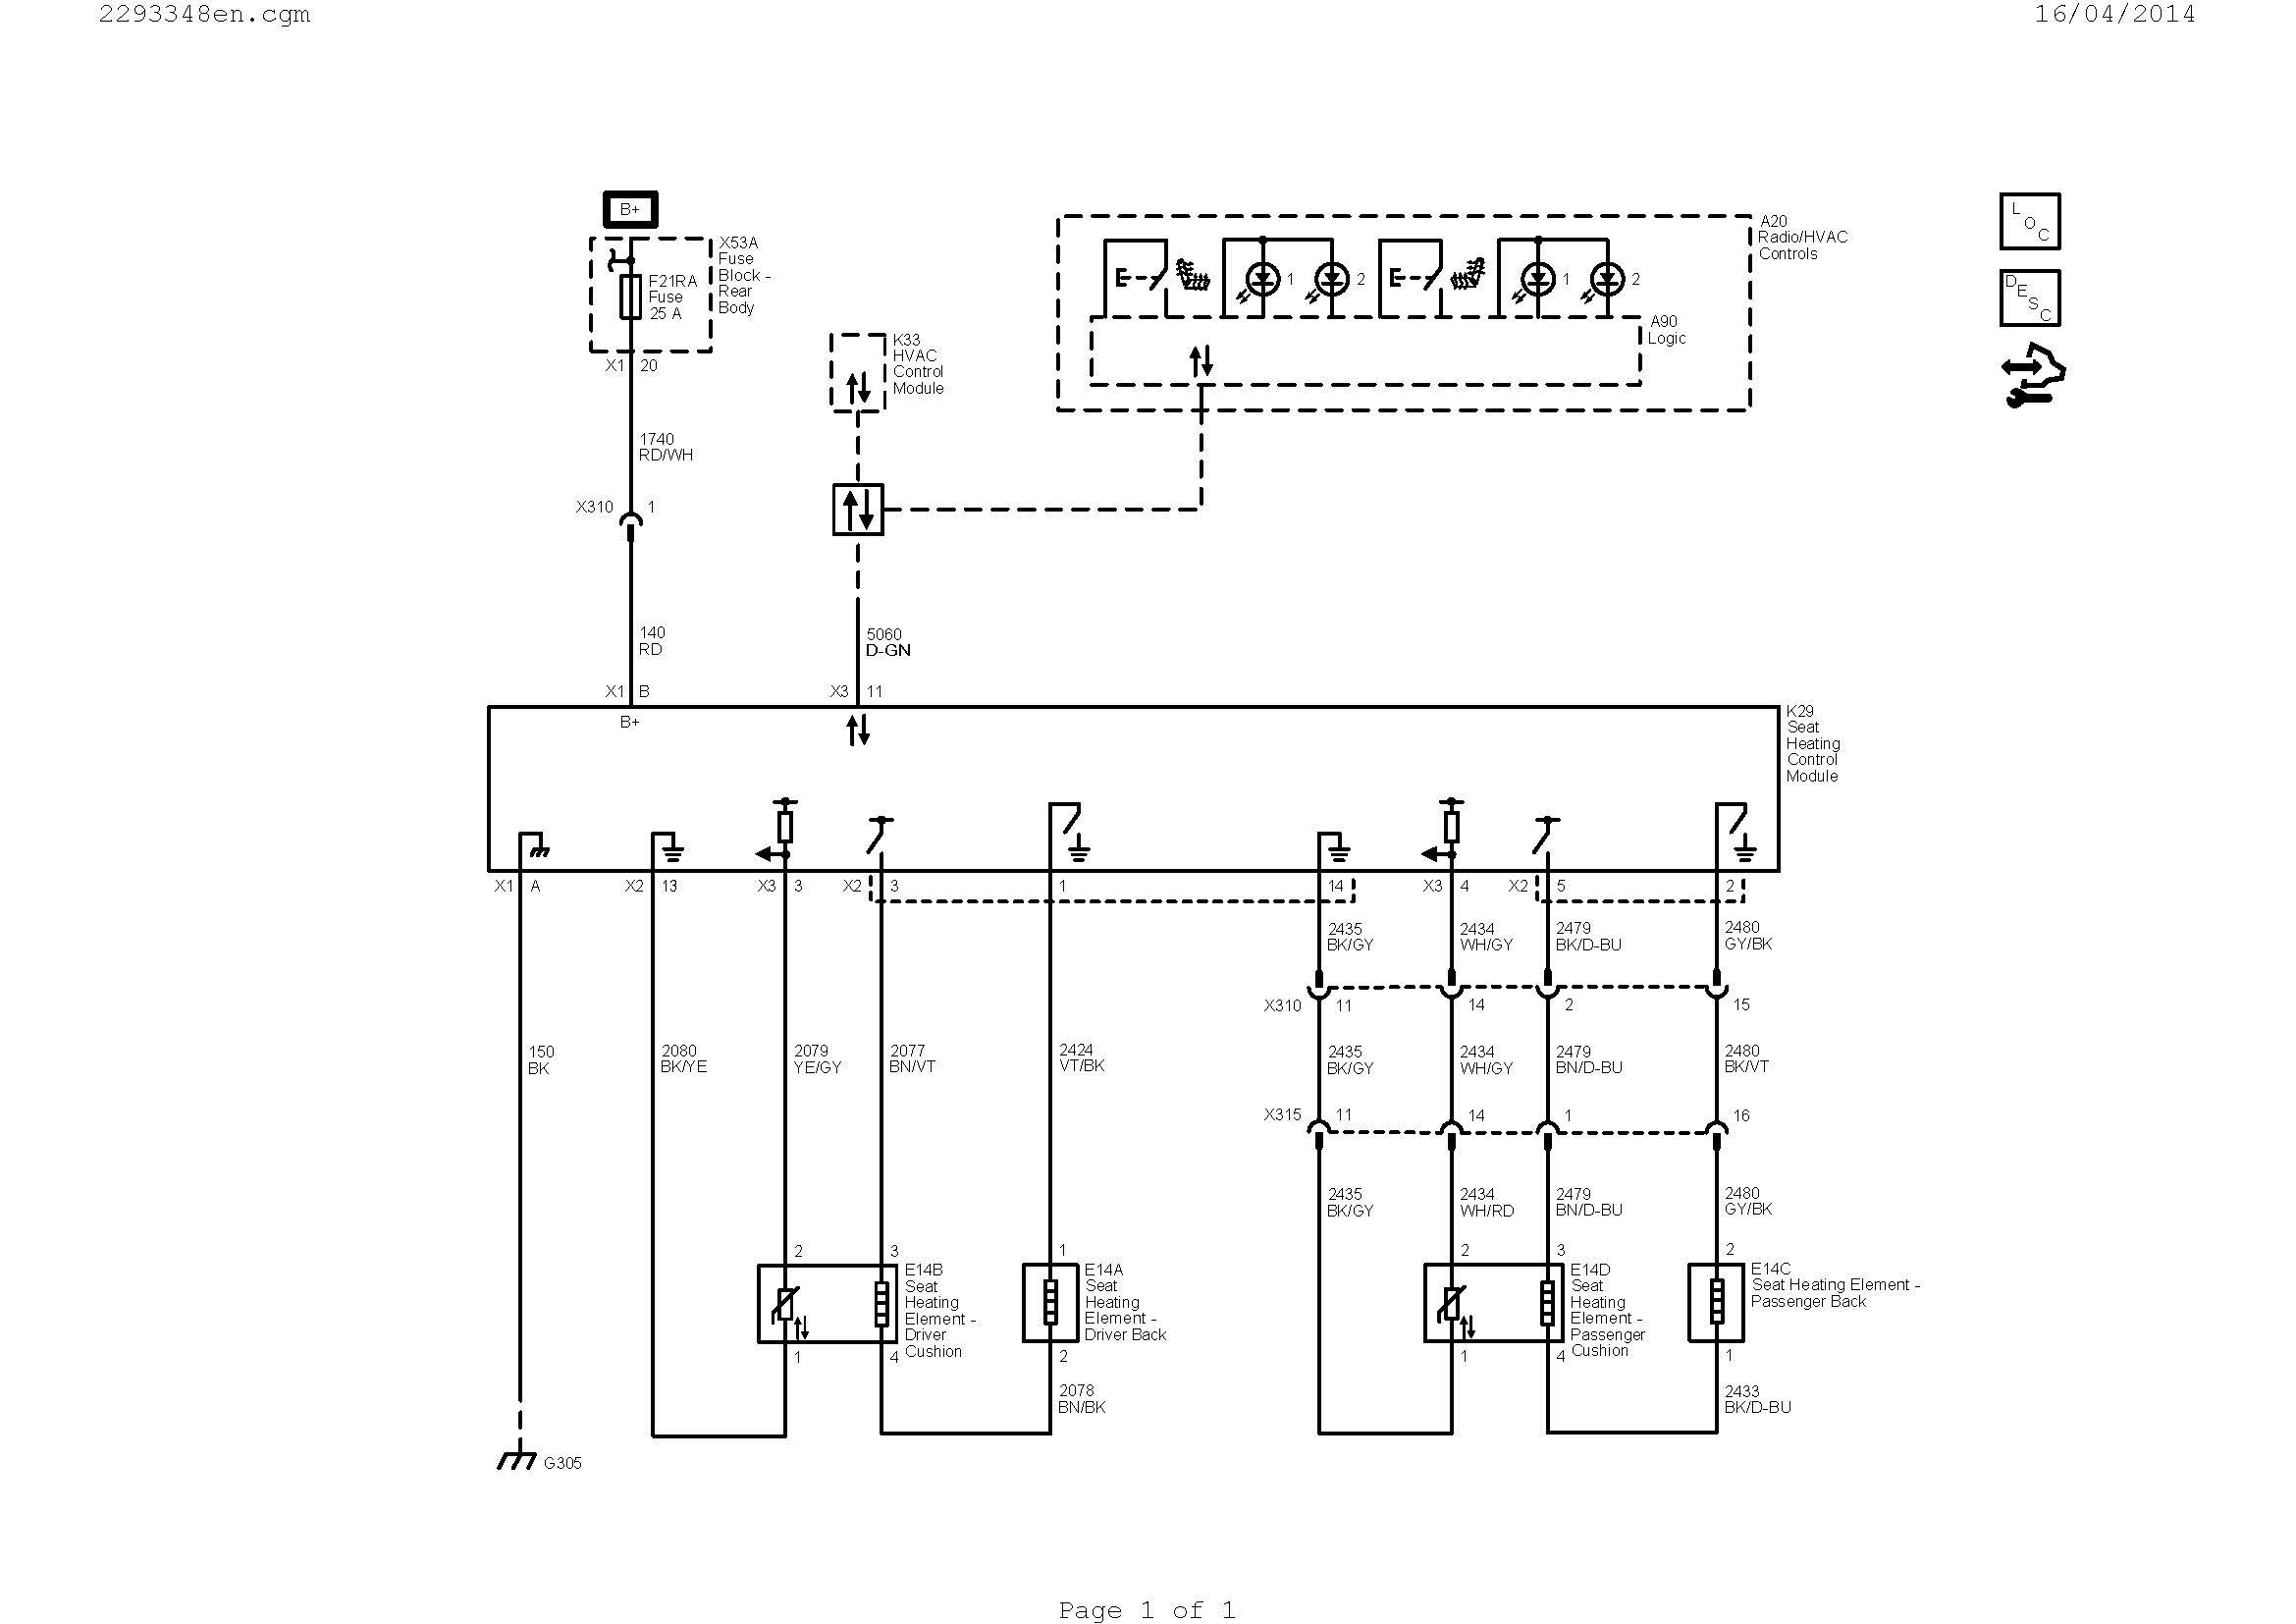 chevy express trailer wiring diagram Collection-central boiler thermostat wiring diagram Download Wiring Diagrams For Central Heating Refrence Hvac Diagram Best 20-l